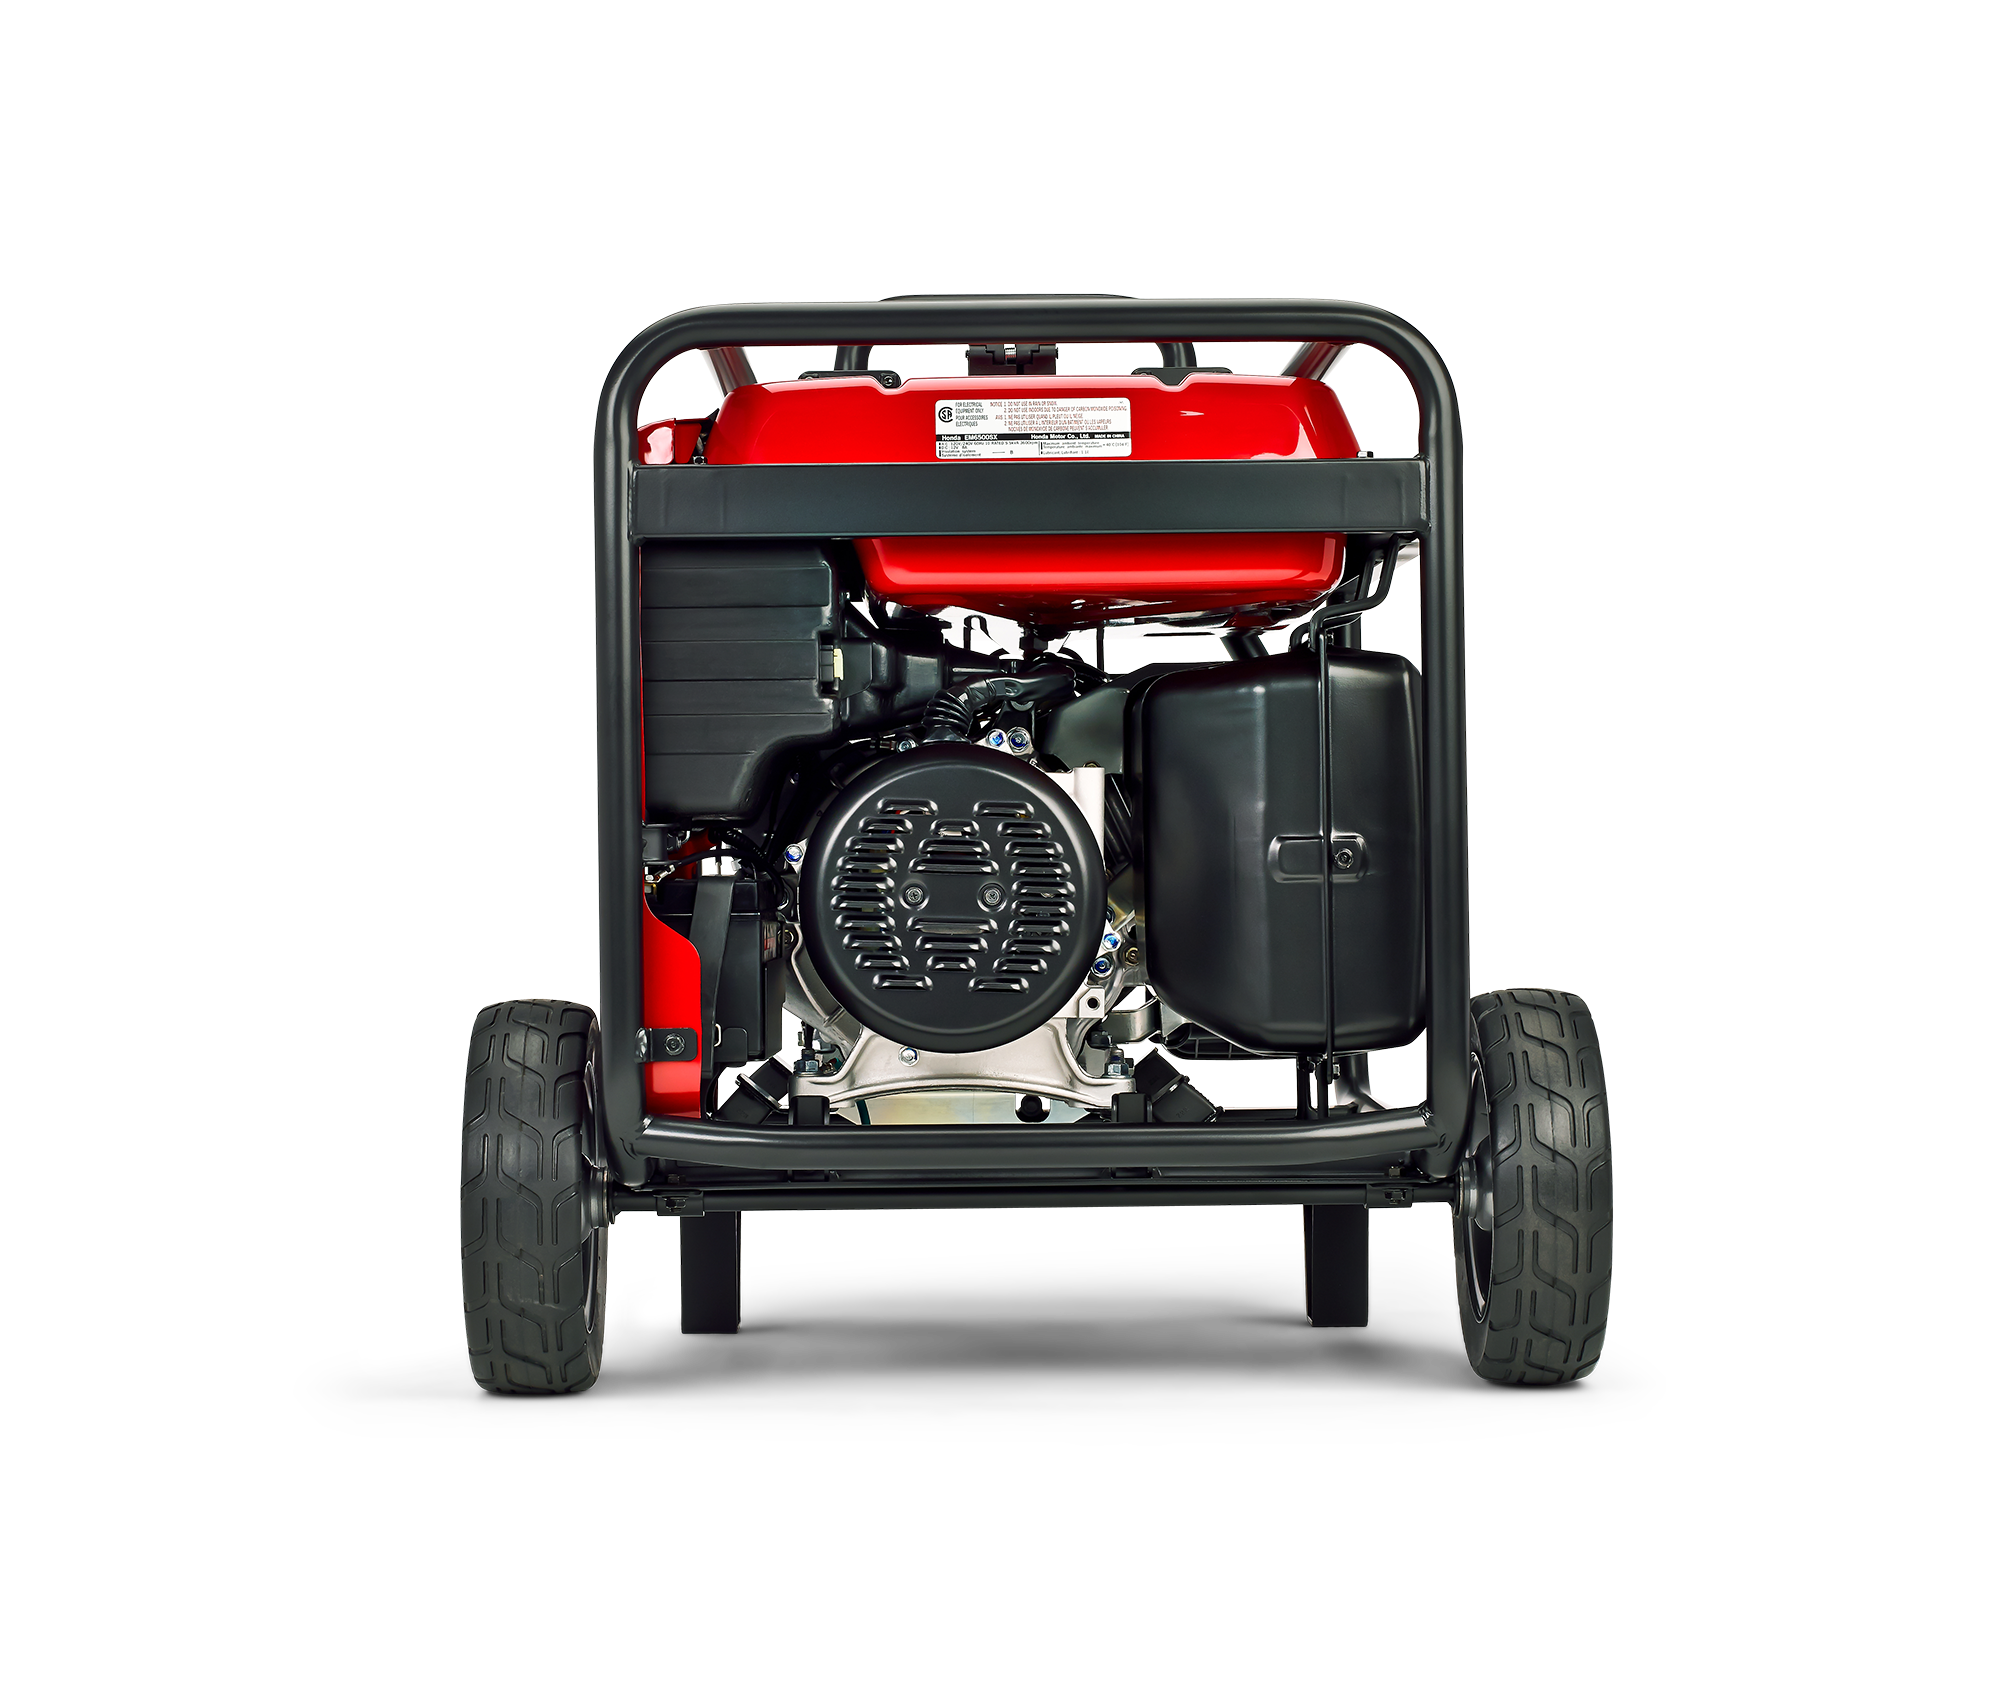 Image of the Electric Start 6500 generator